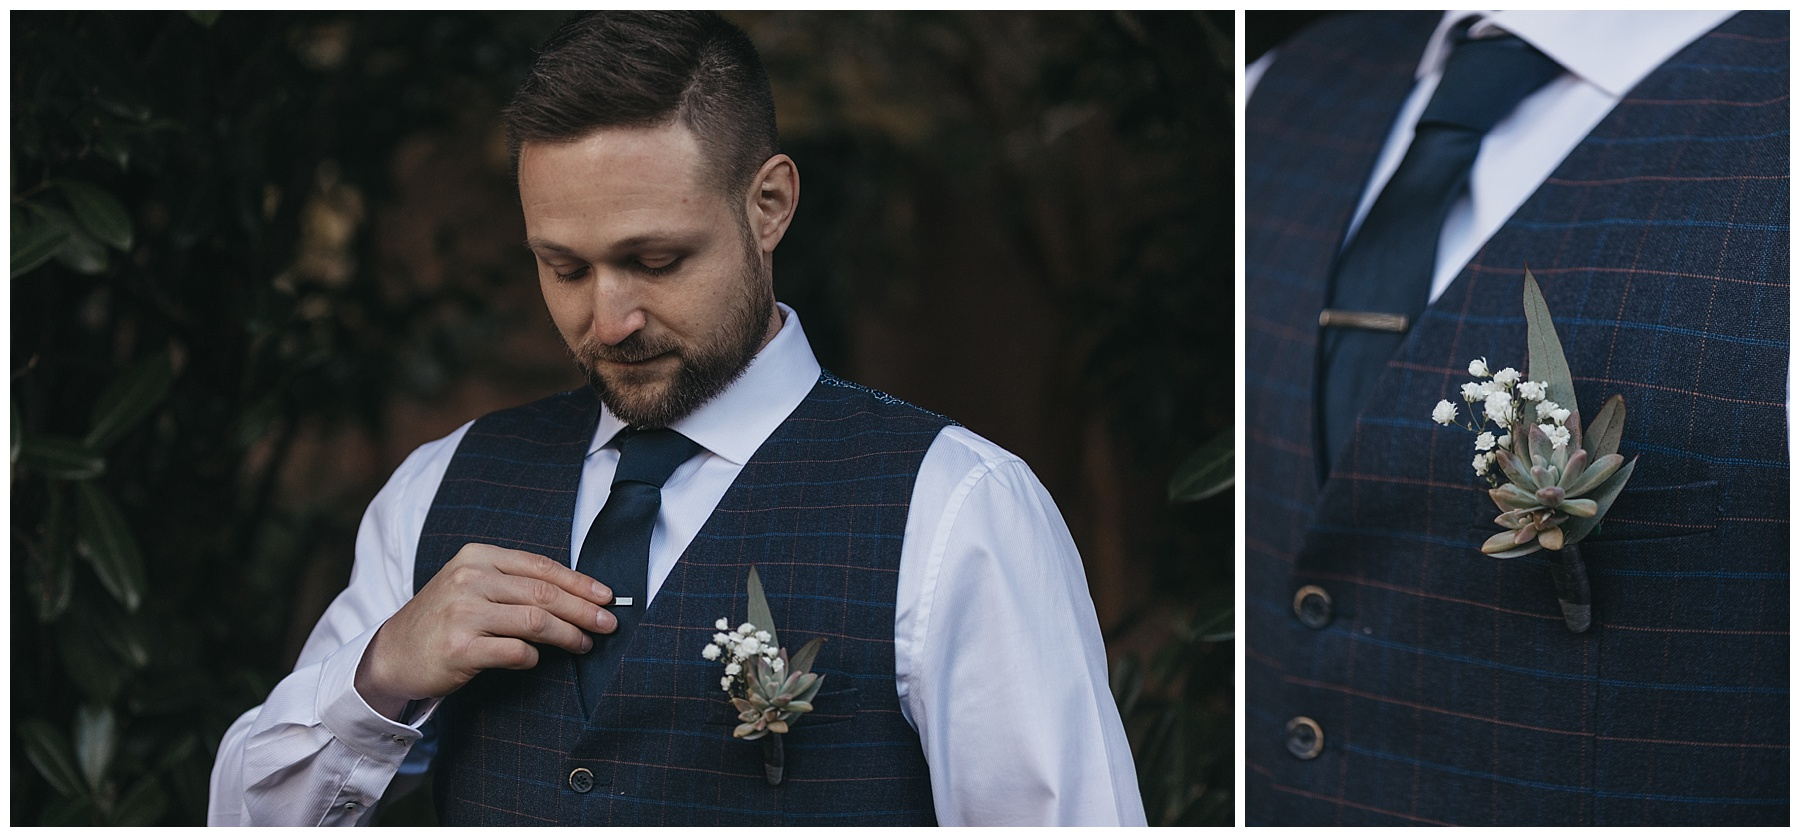 The groom's details - wearing a succulent buttonhole and navy pin stripe suit